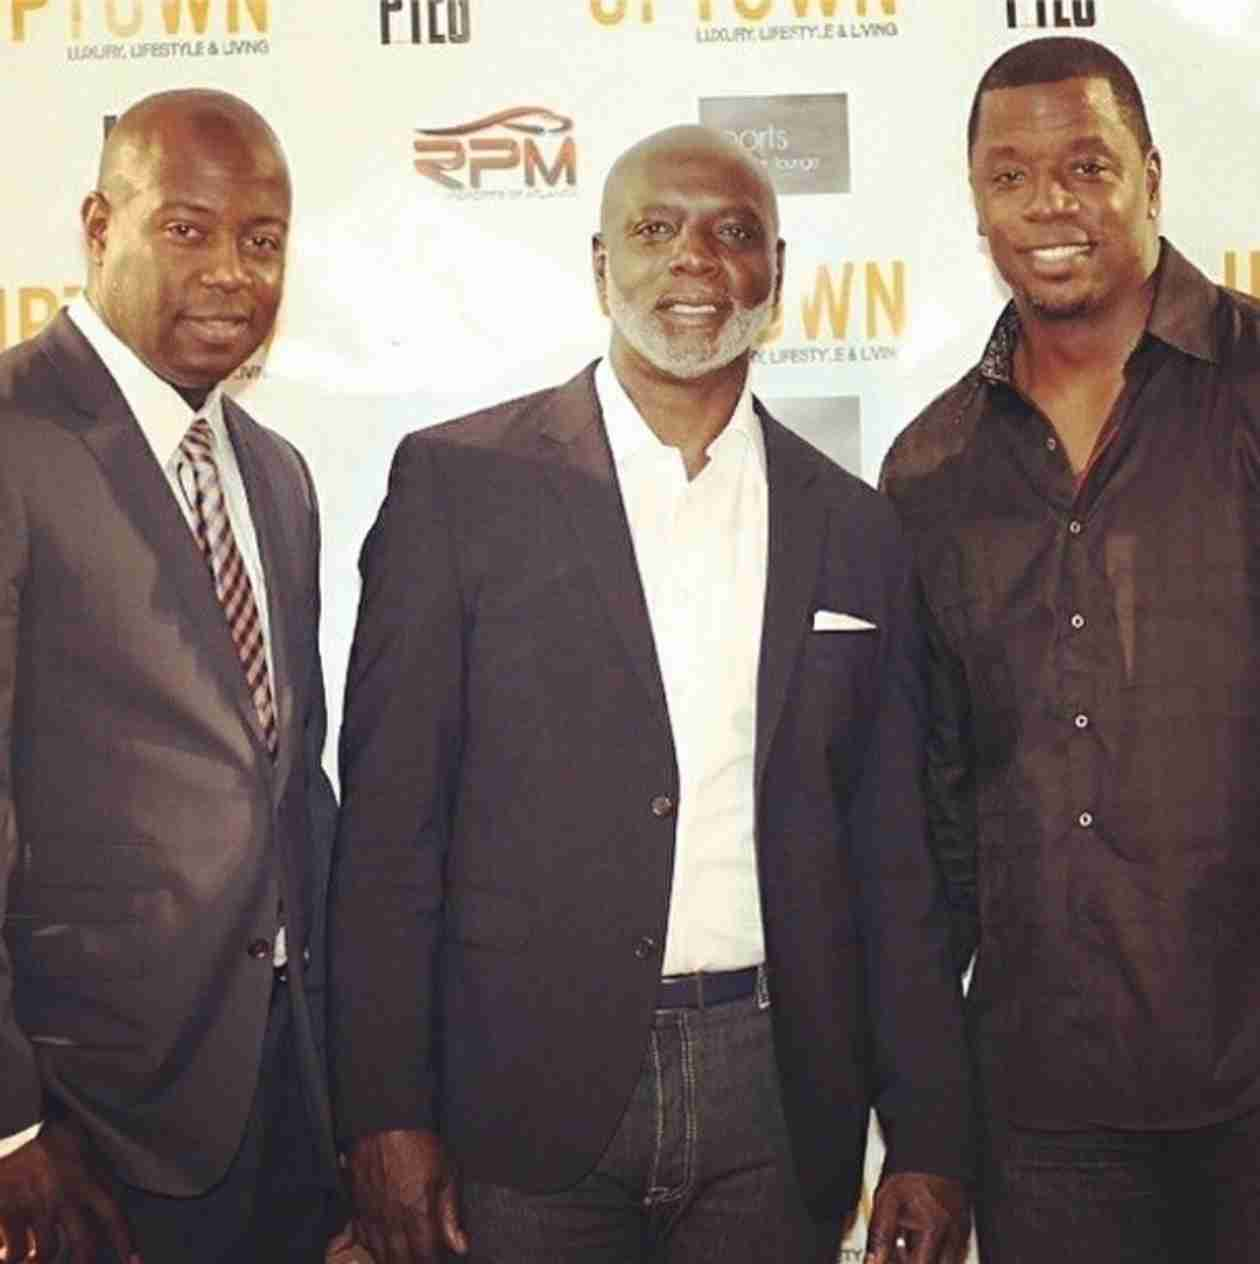 Kordell Stewart Supports Peter Thomas and Sports One Opening